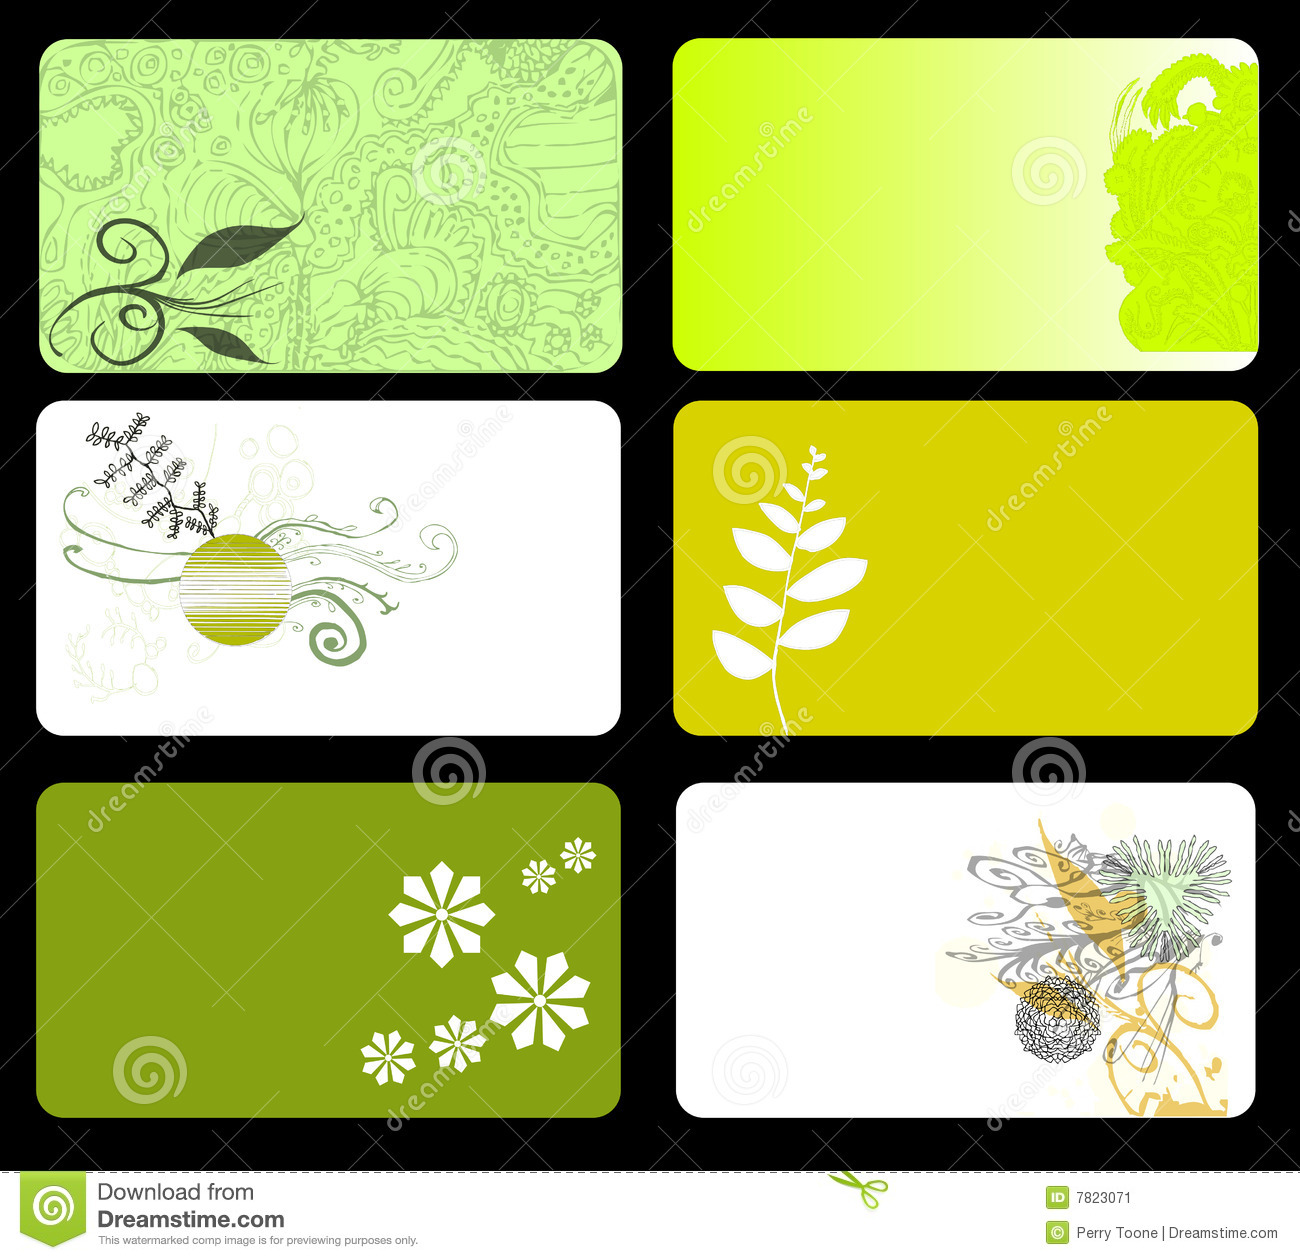 Green Floral Business Cards Stock Image - Image: 7823071